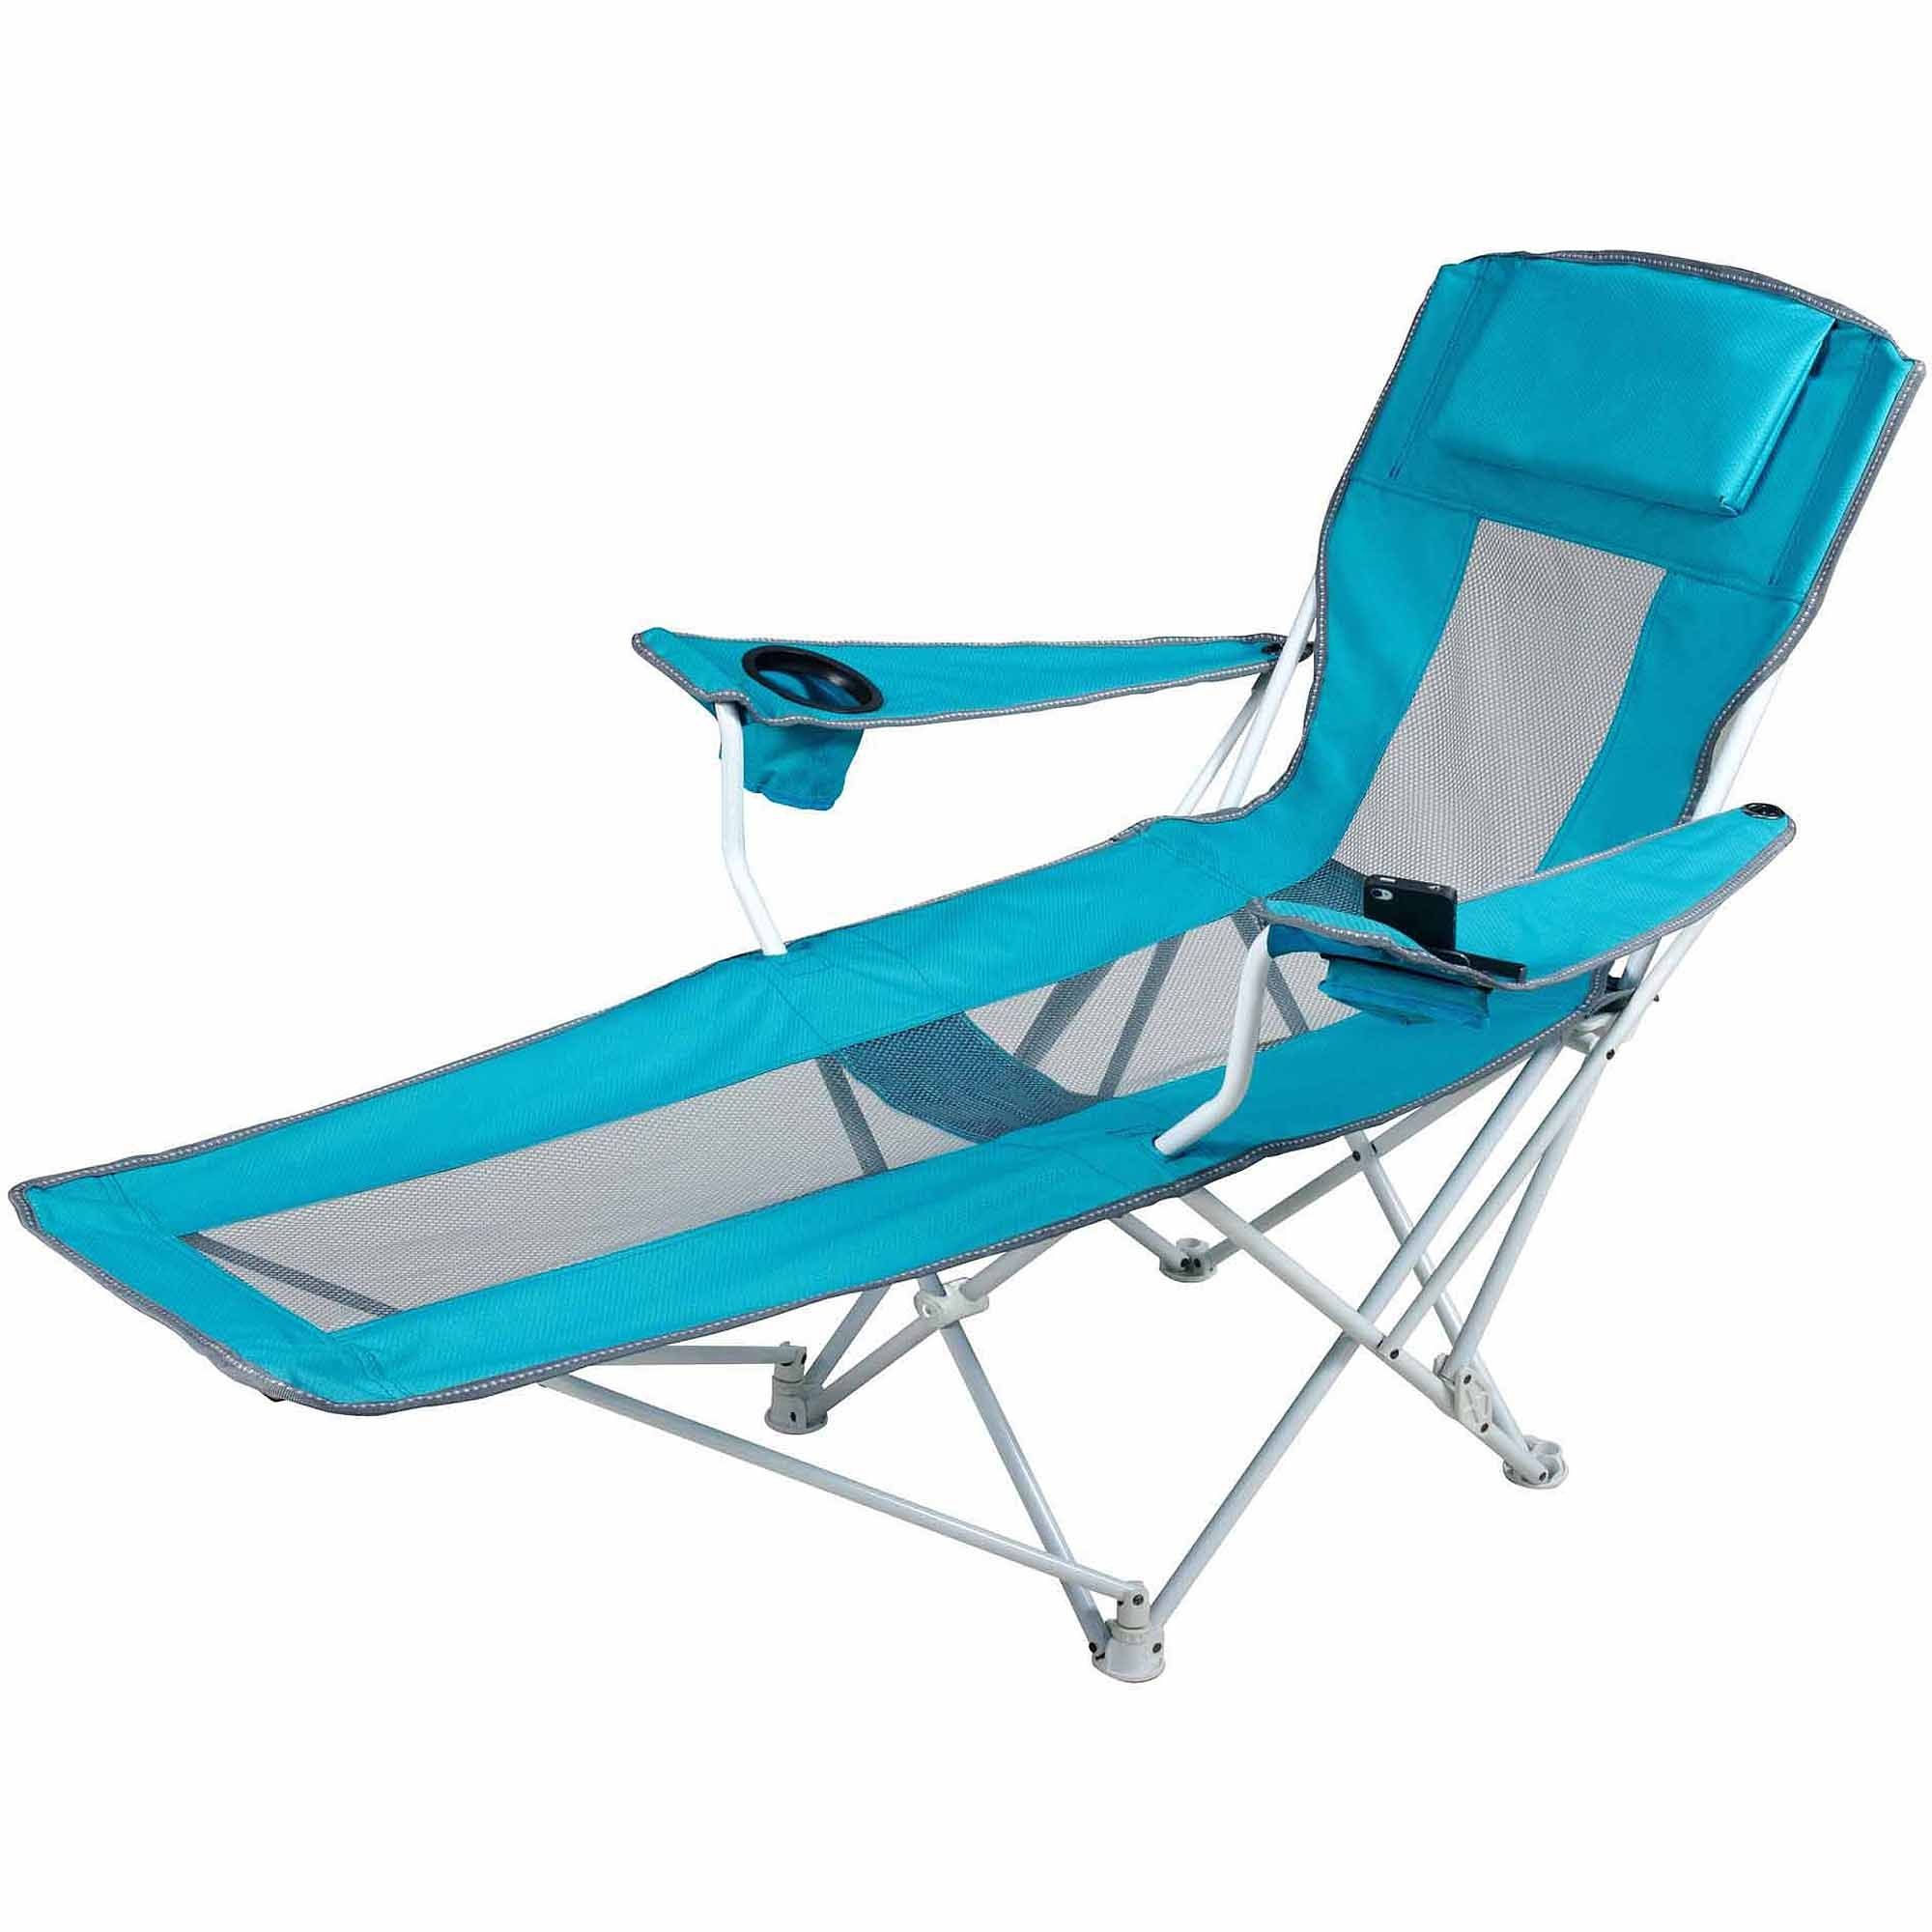 Plastic Fold Up Lounge Chair